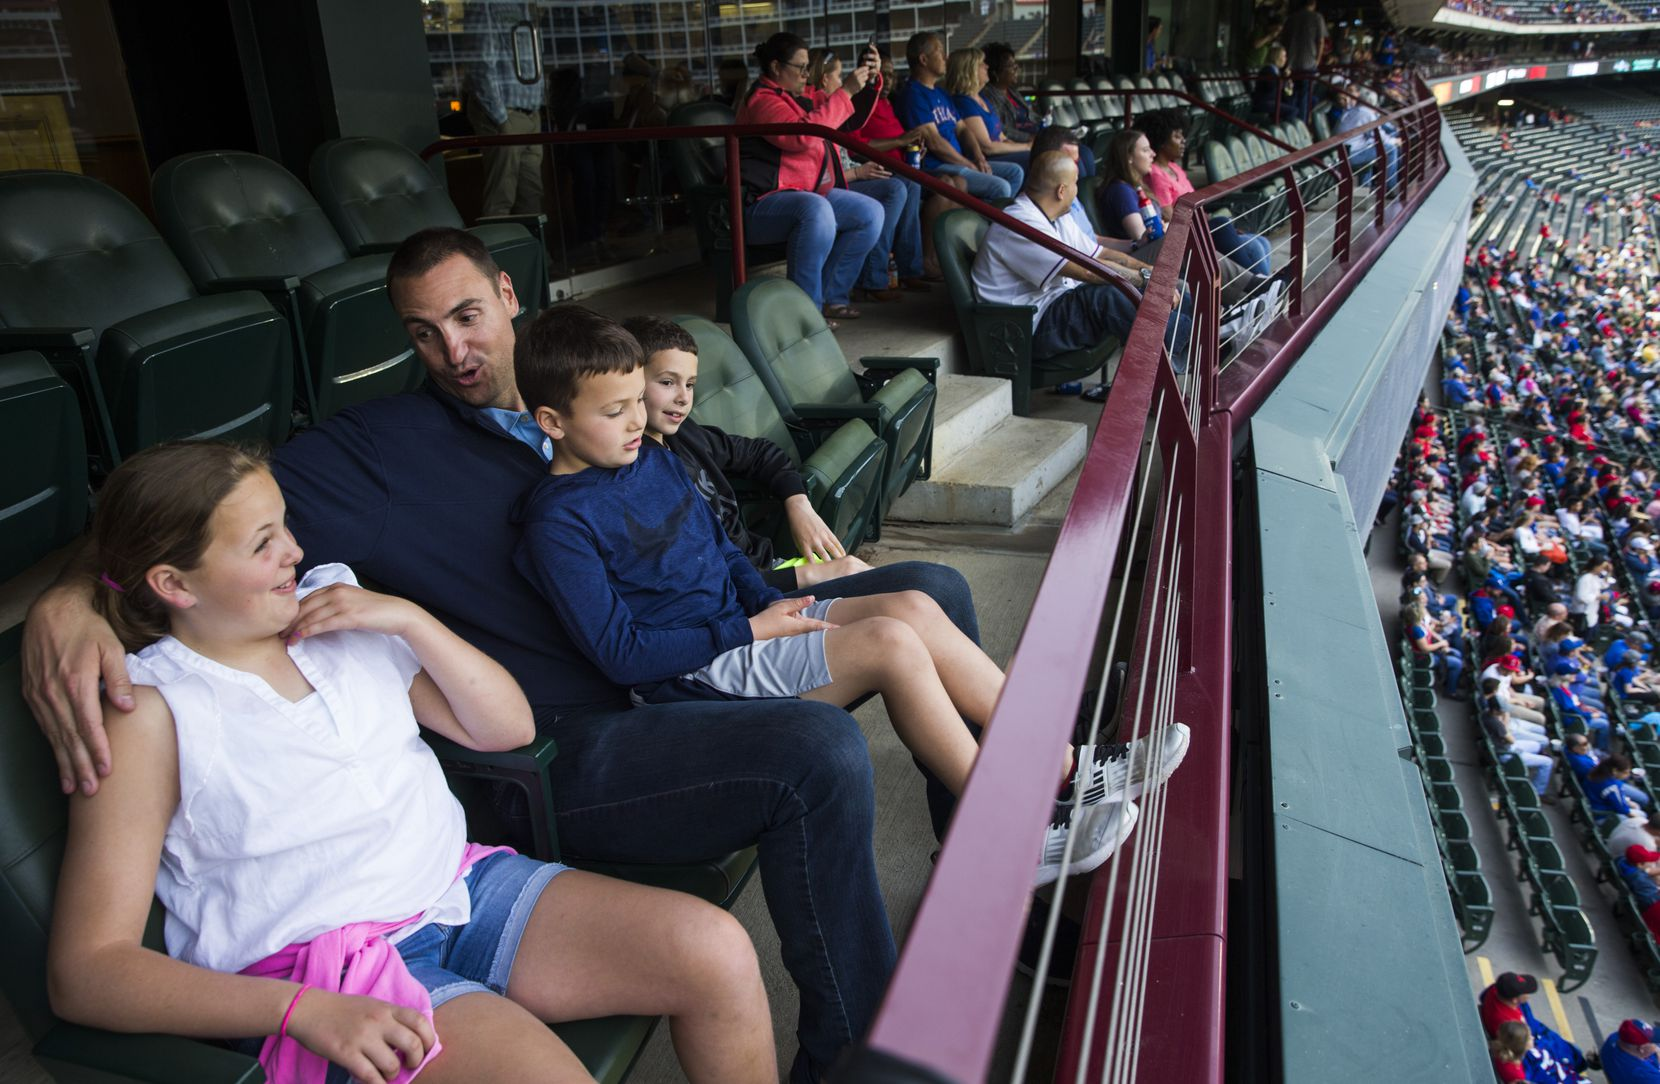 Former MLB pitcher Chris Young sits in a suite with his children, Cate Young, 11, Grant Young, 6, and Scott Young, 8, during the first inning of an MLB game between the Texas Rangers and the Los Angeles Angels on Tuesday, April 16, 2019 at Globe Life Park in Arlington. (Ashley Landis/The Dallas Morning News)